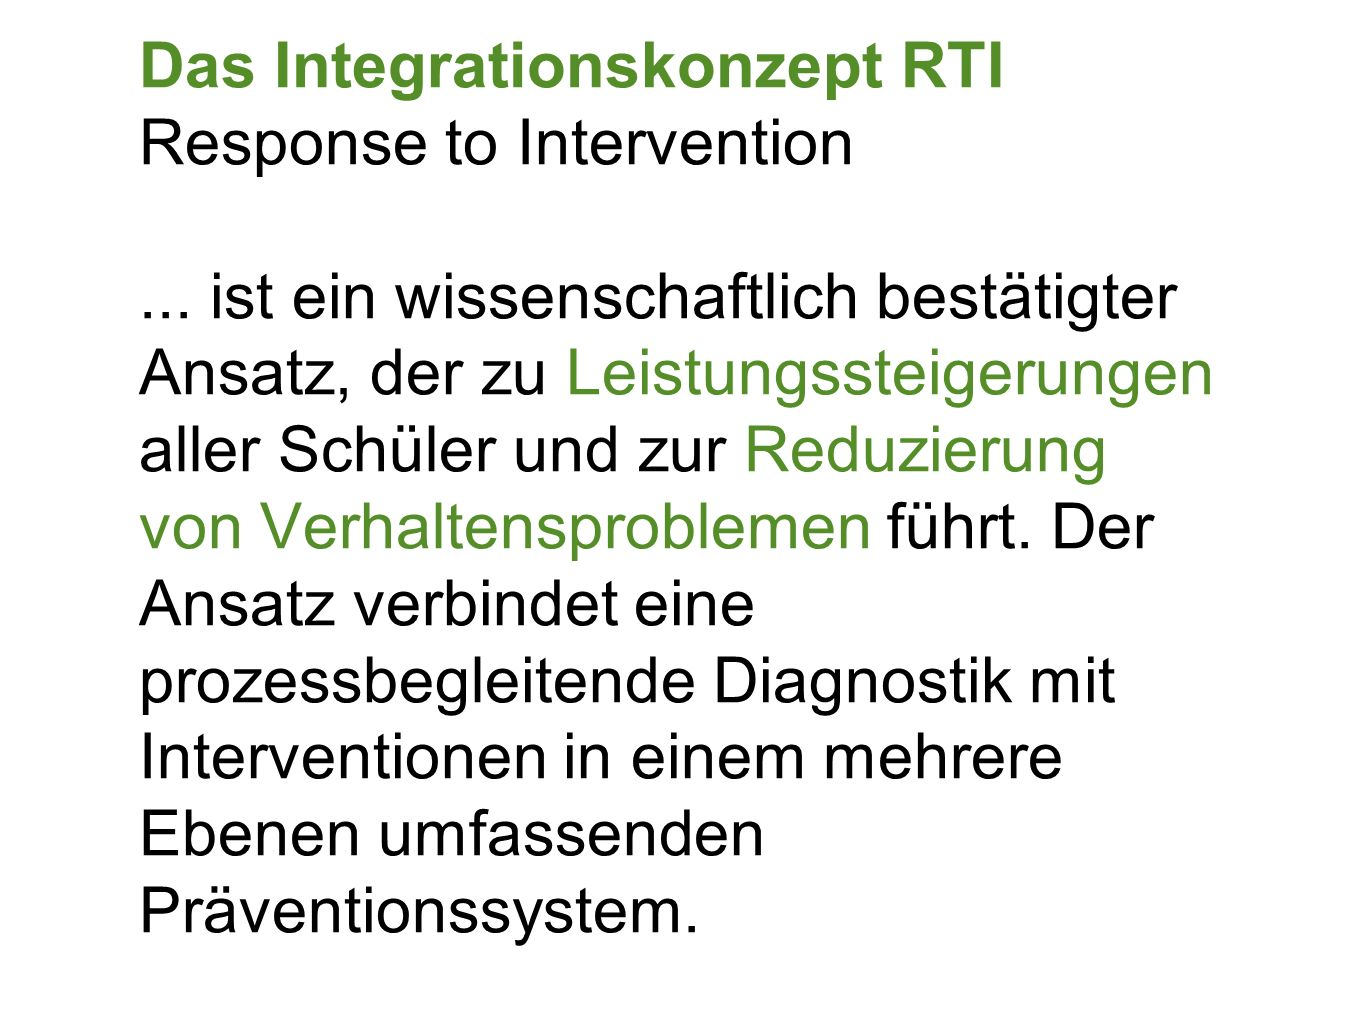 Das Integrationskonzept RTI Response to Intervention